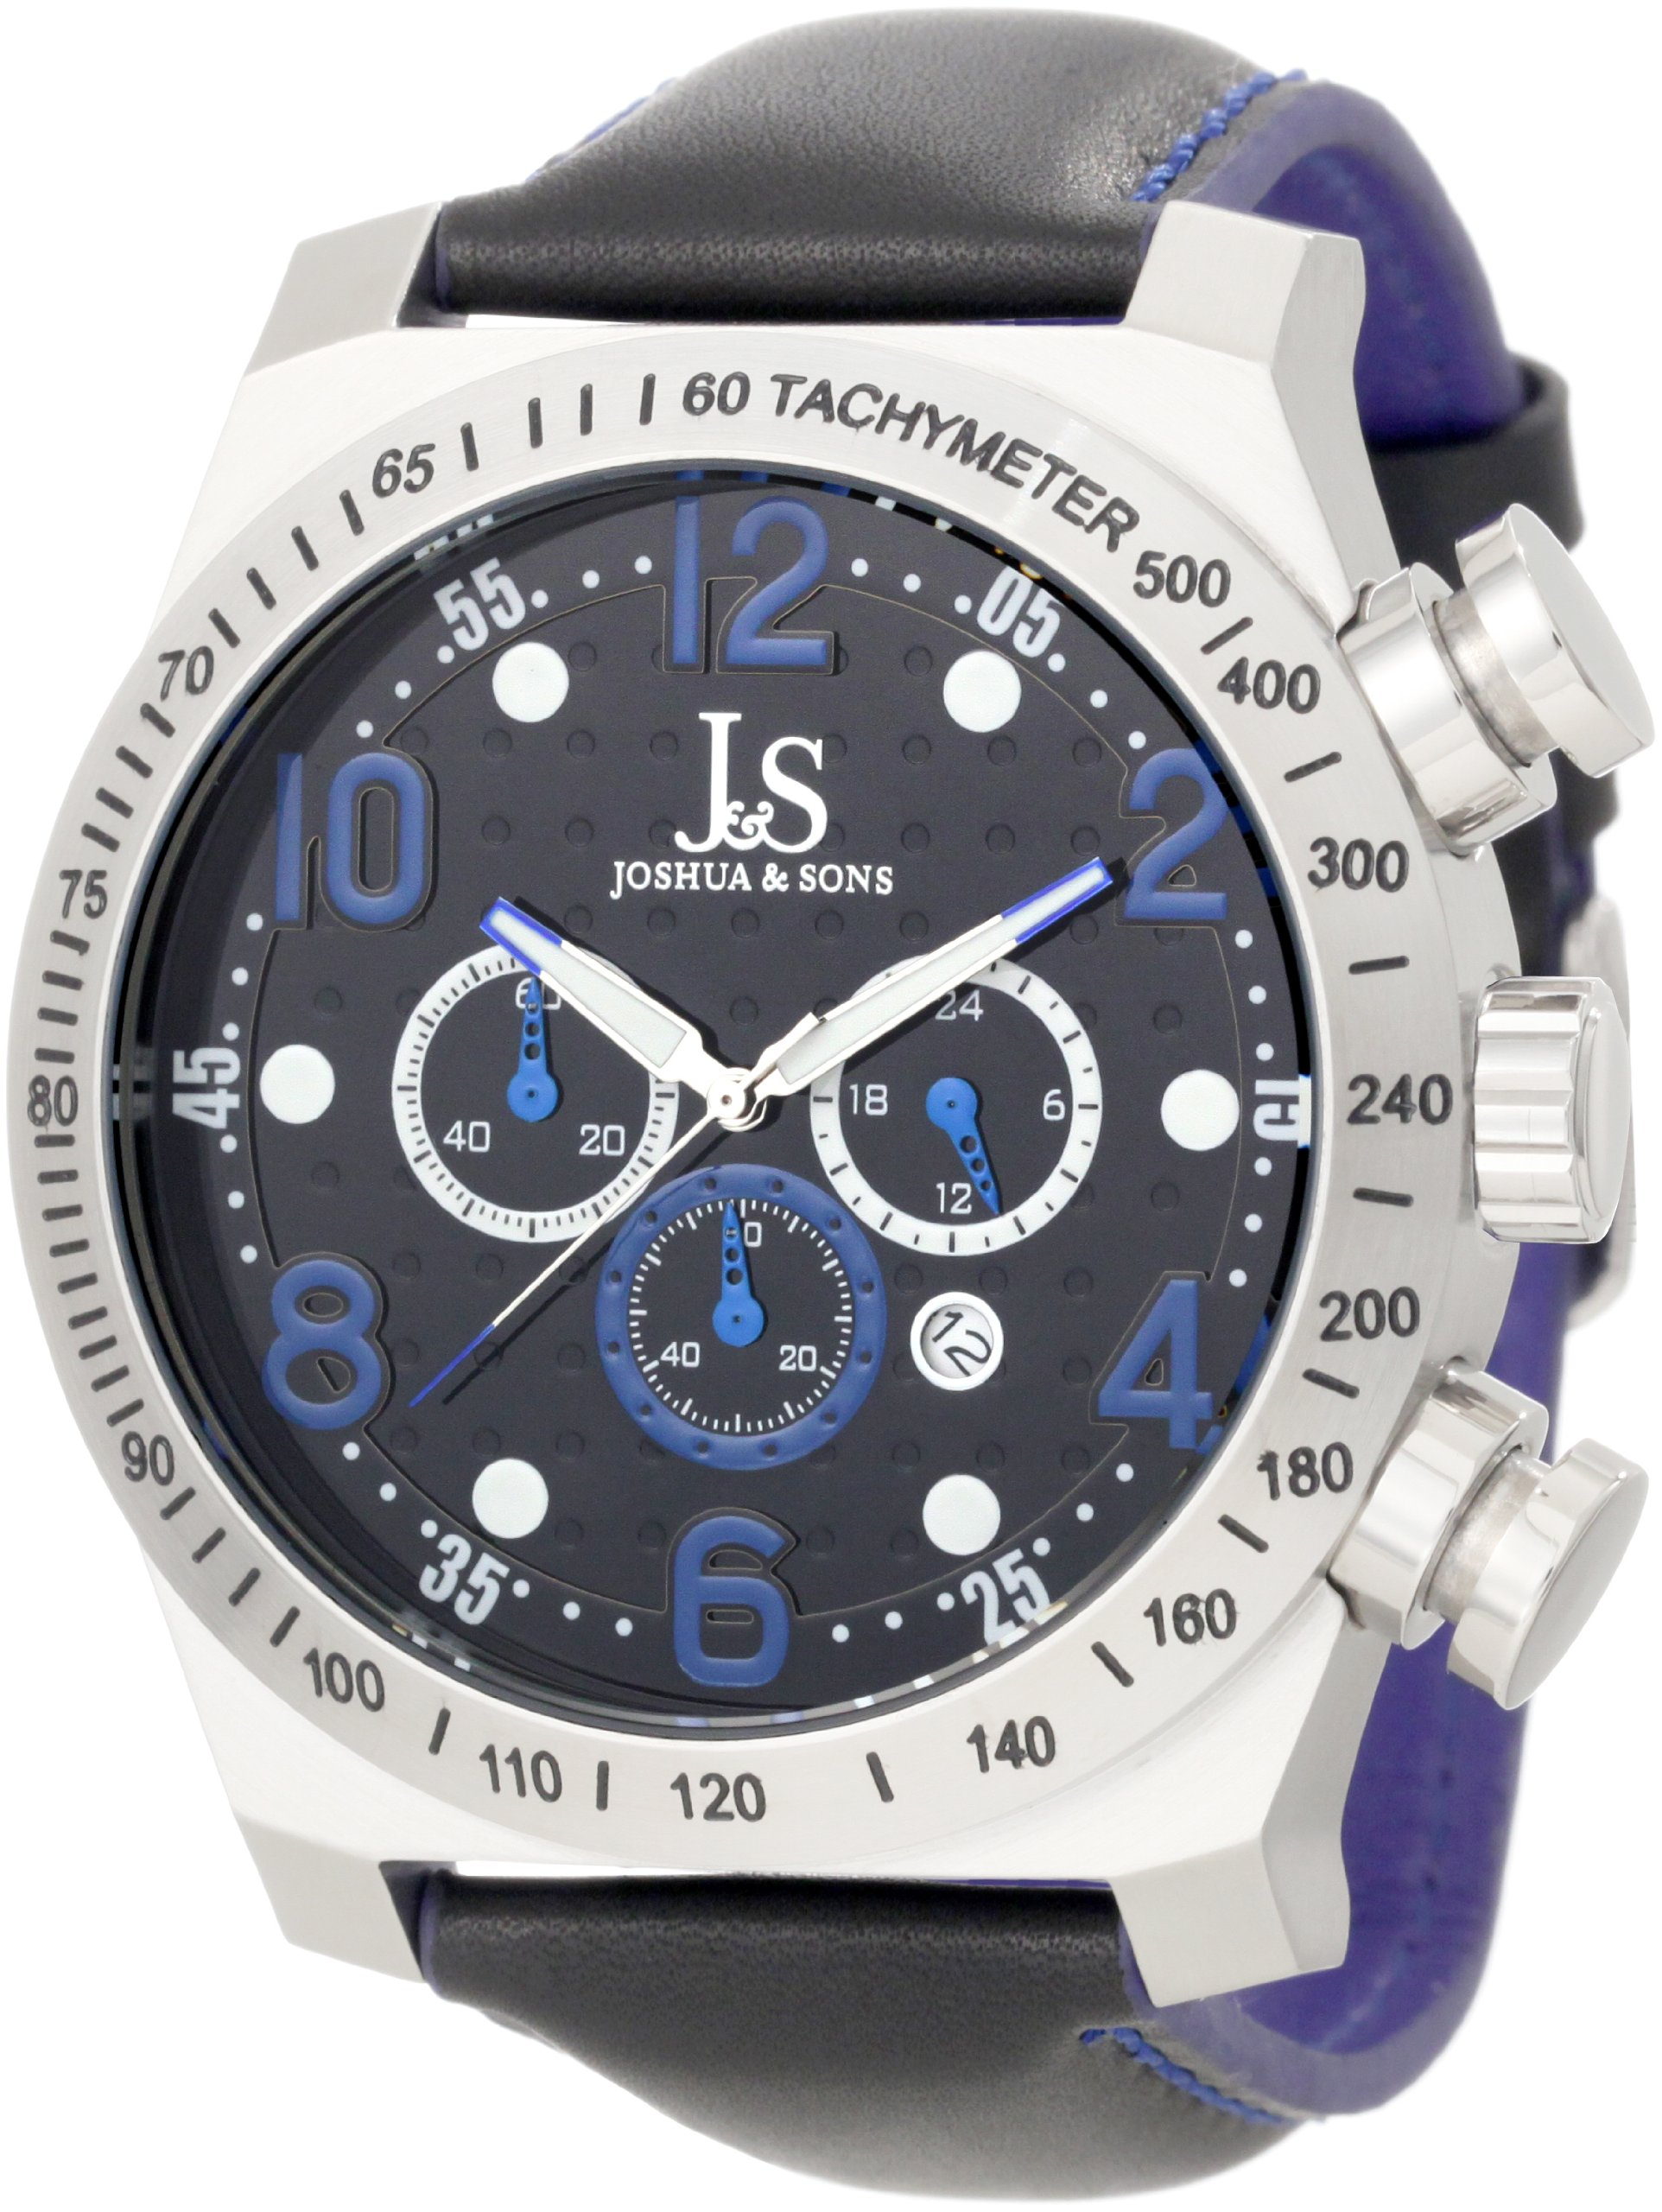 Joshua & Sons Men's JS-14-BU Chronograph Stainless Steel Sports Watch by Joshua & Sons